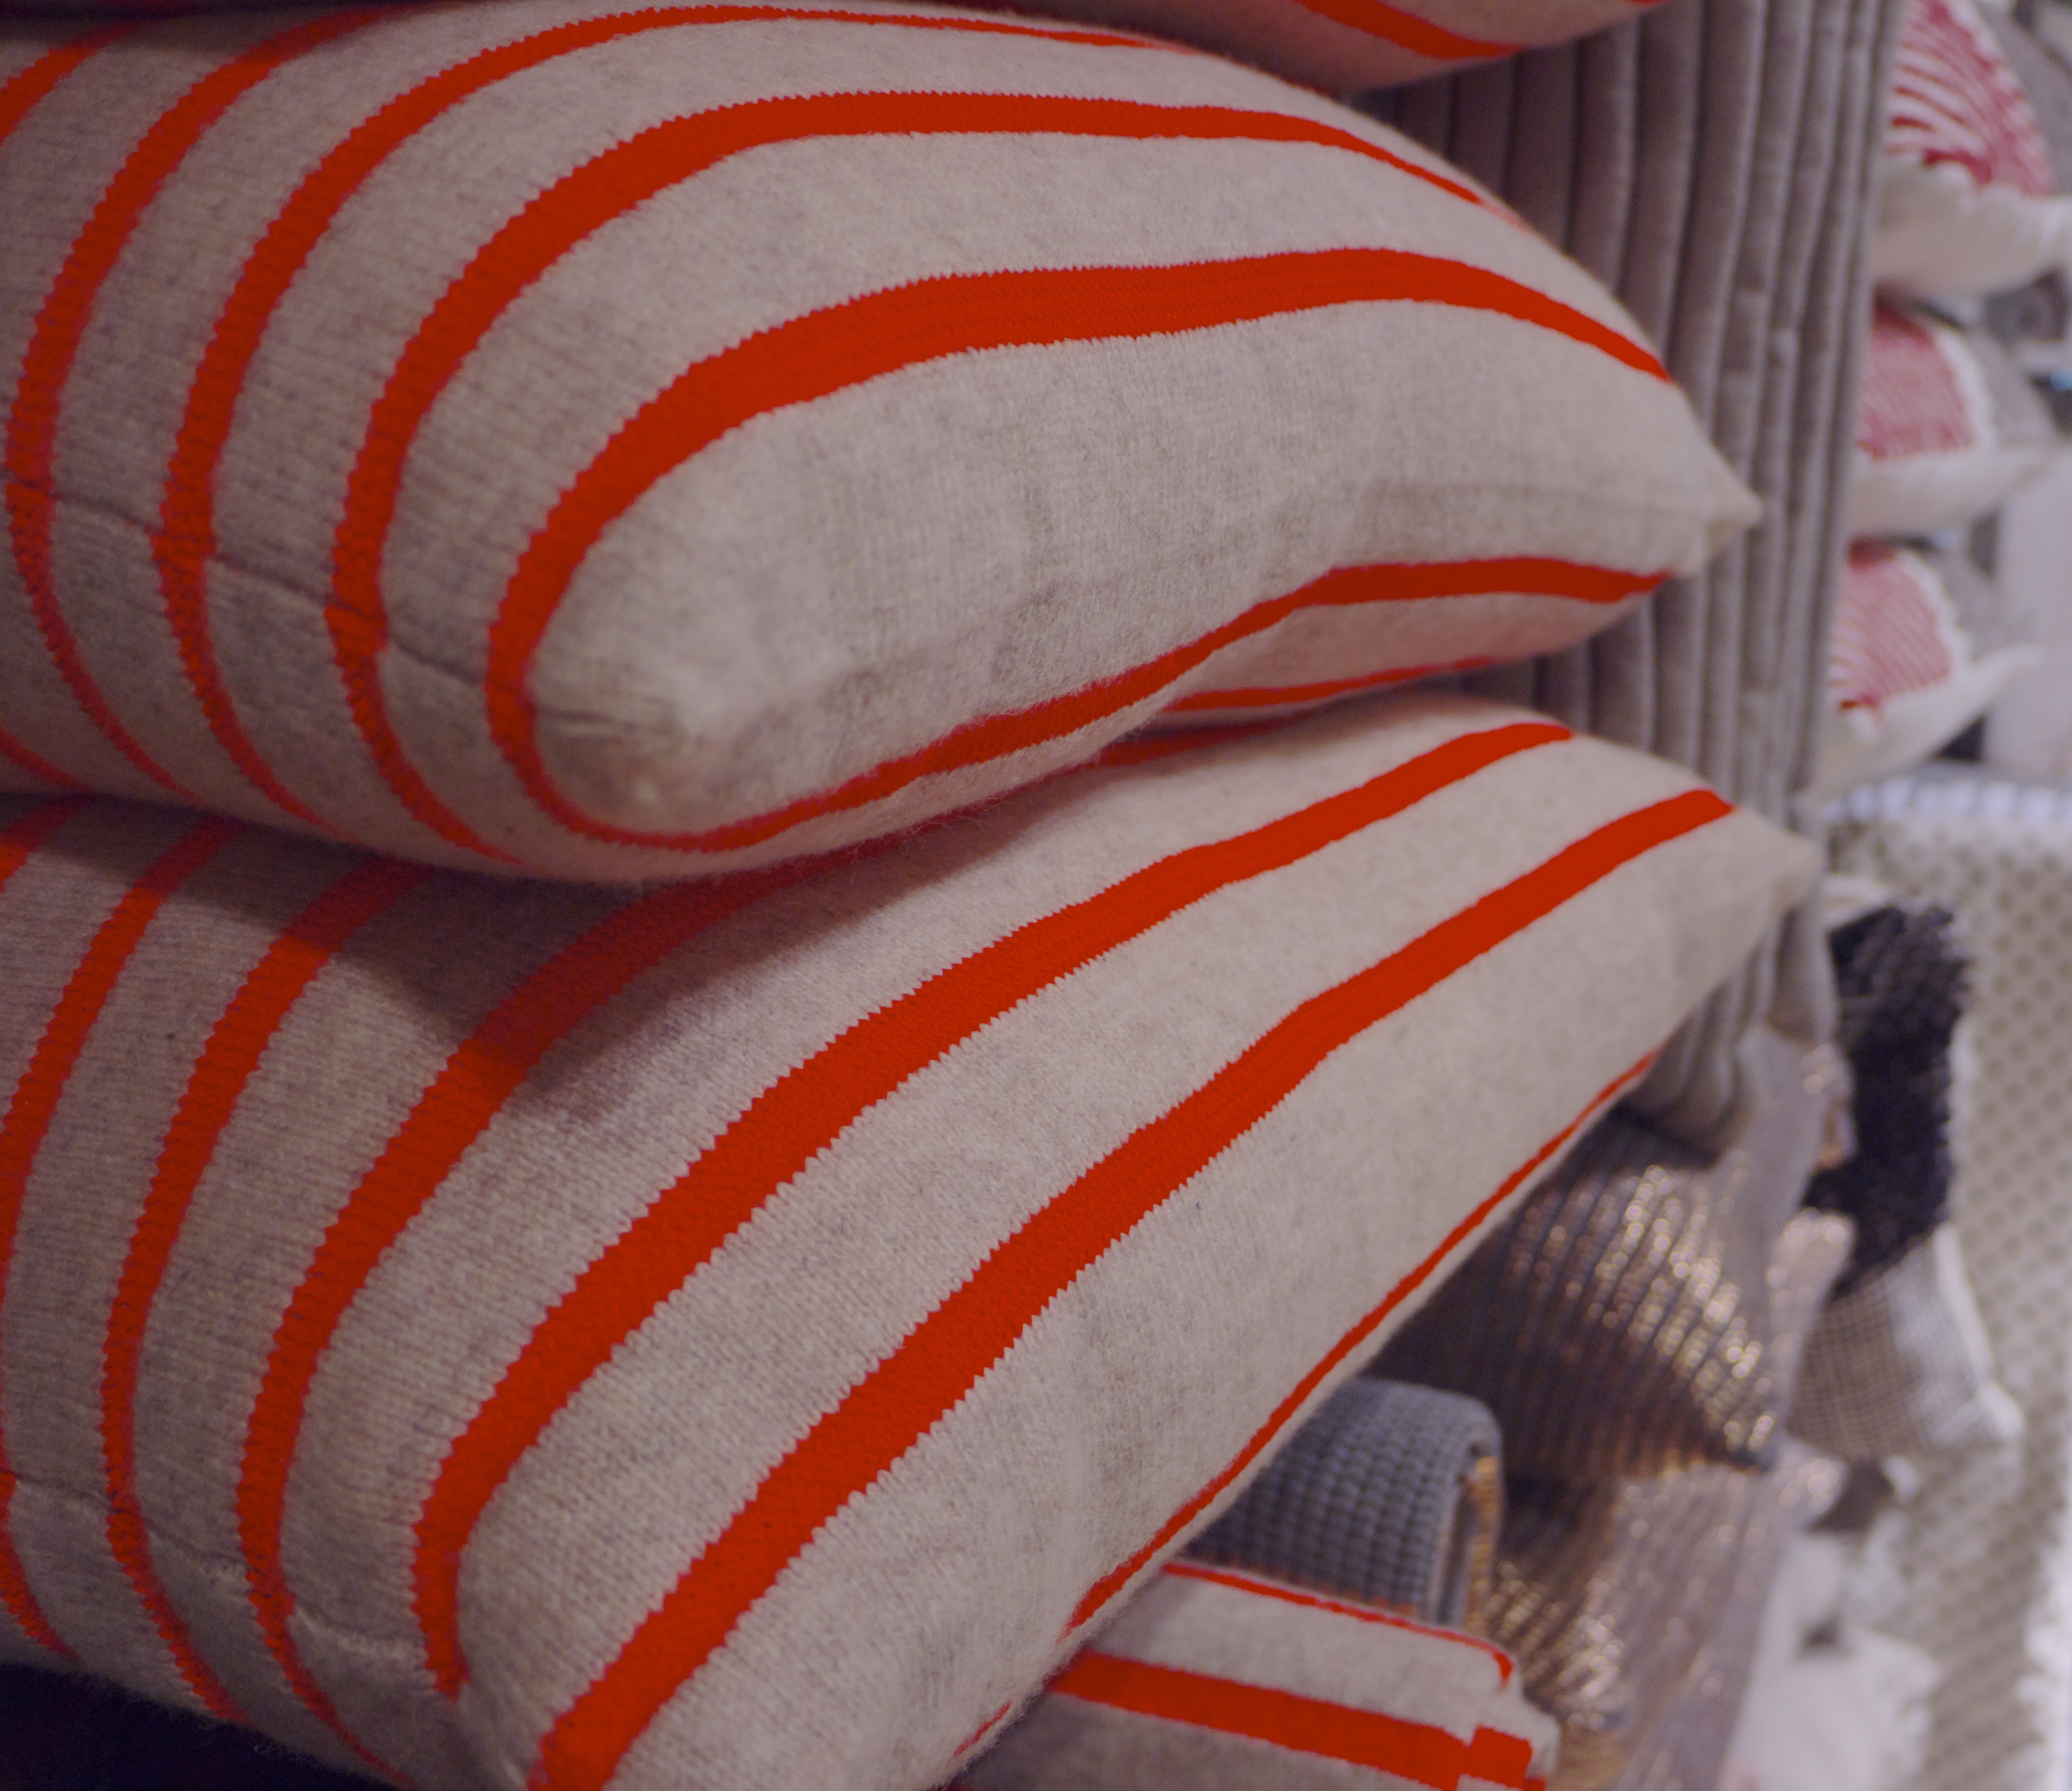 Neon Decor - Striped Cushions from Country Road